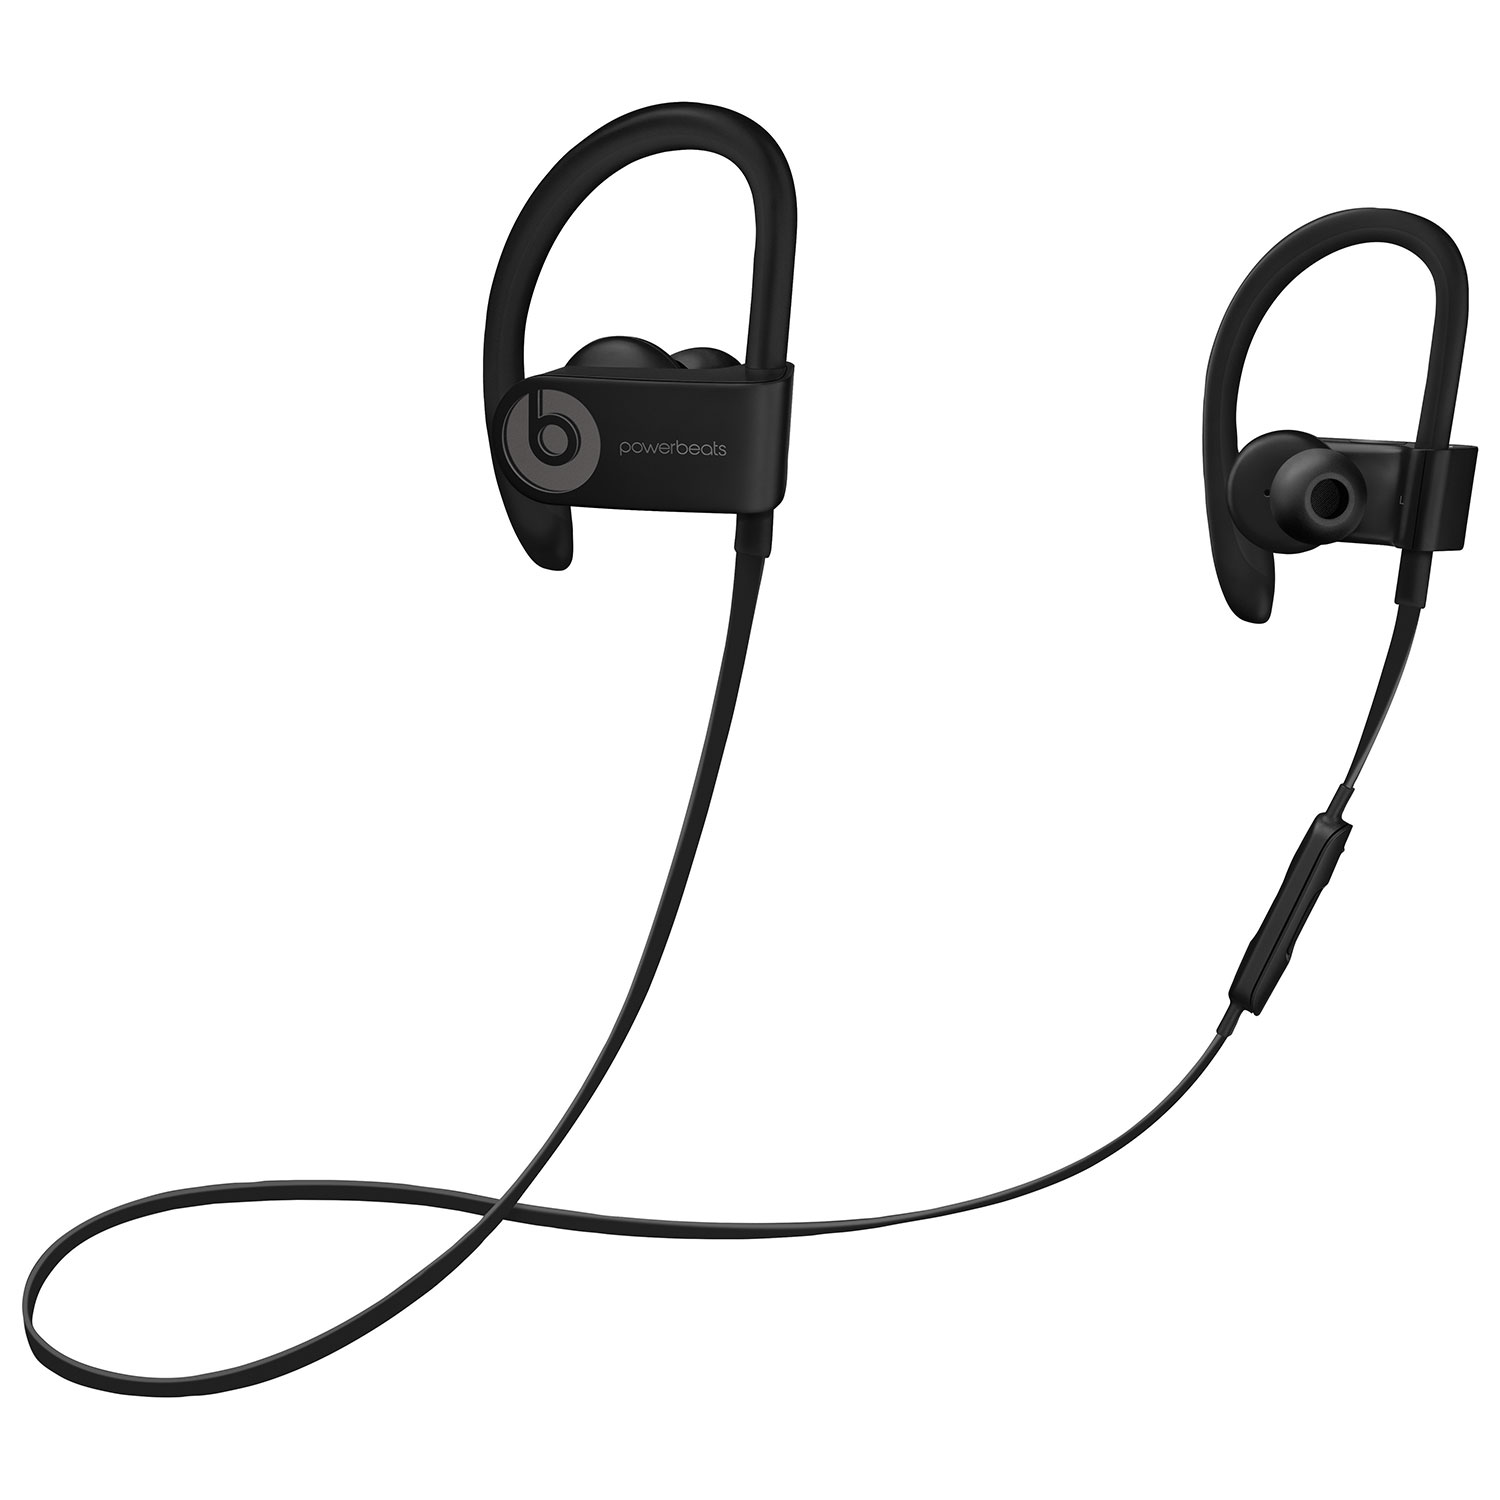 Beats by Dr.Dre Powerbeats 3 In-Ear Bluetooth Sport Headphones - Black    Earbuds   In-Ear Headphones - Best Buy Canada d28068cee0